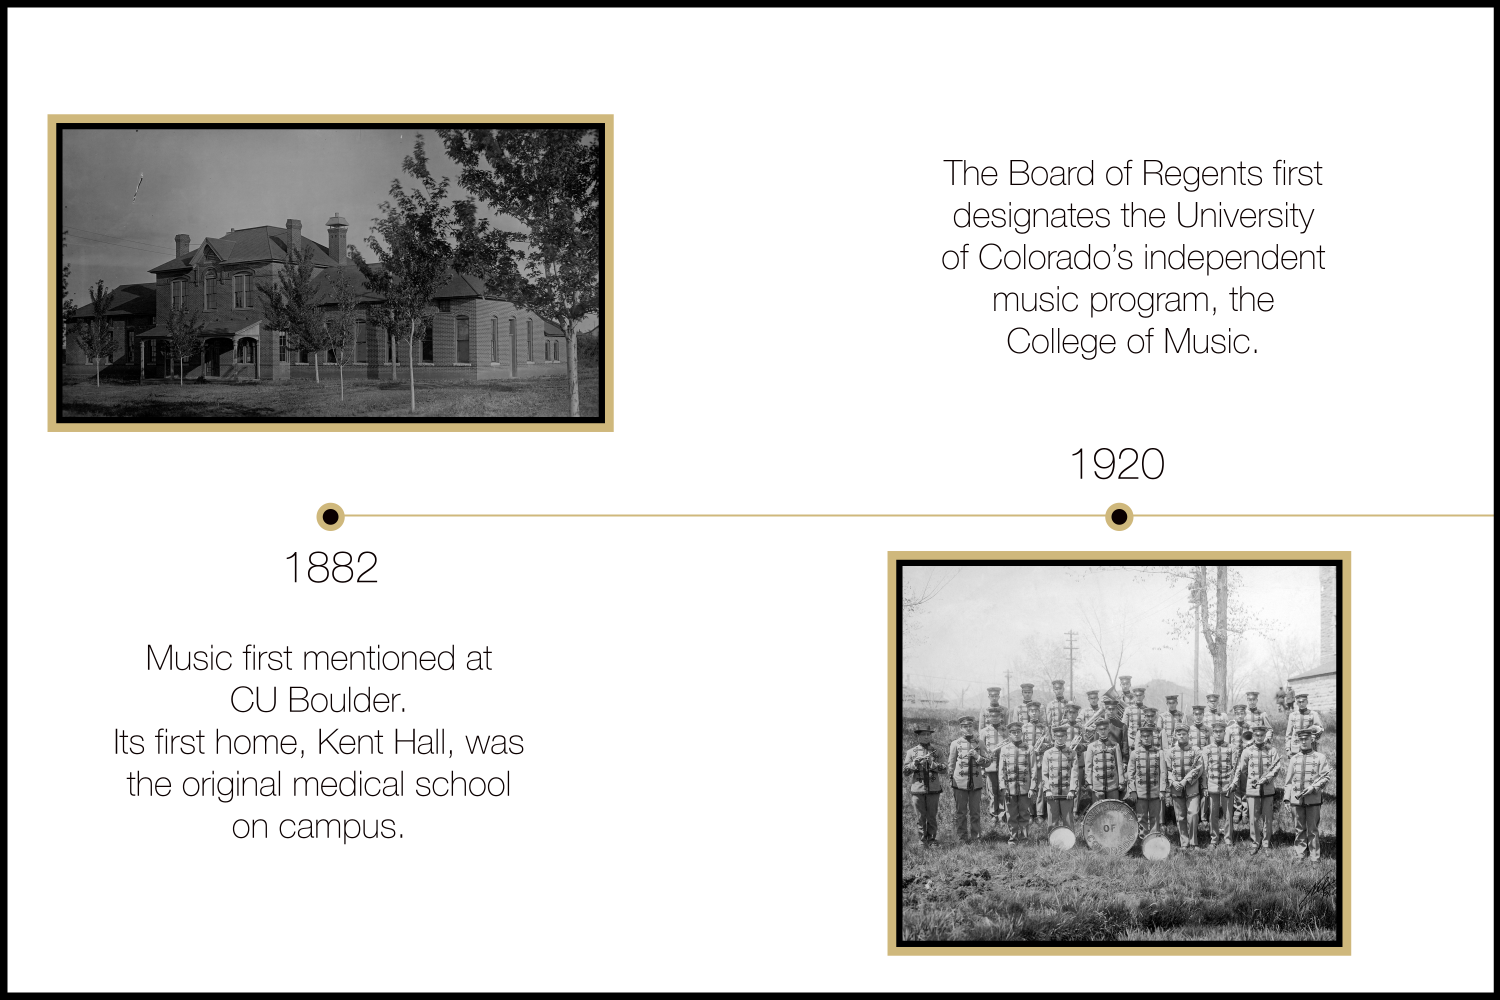 kent hall and the marching band: 1882-1920